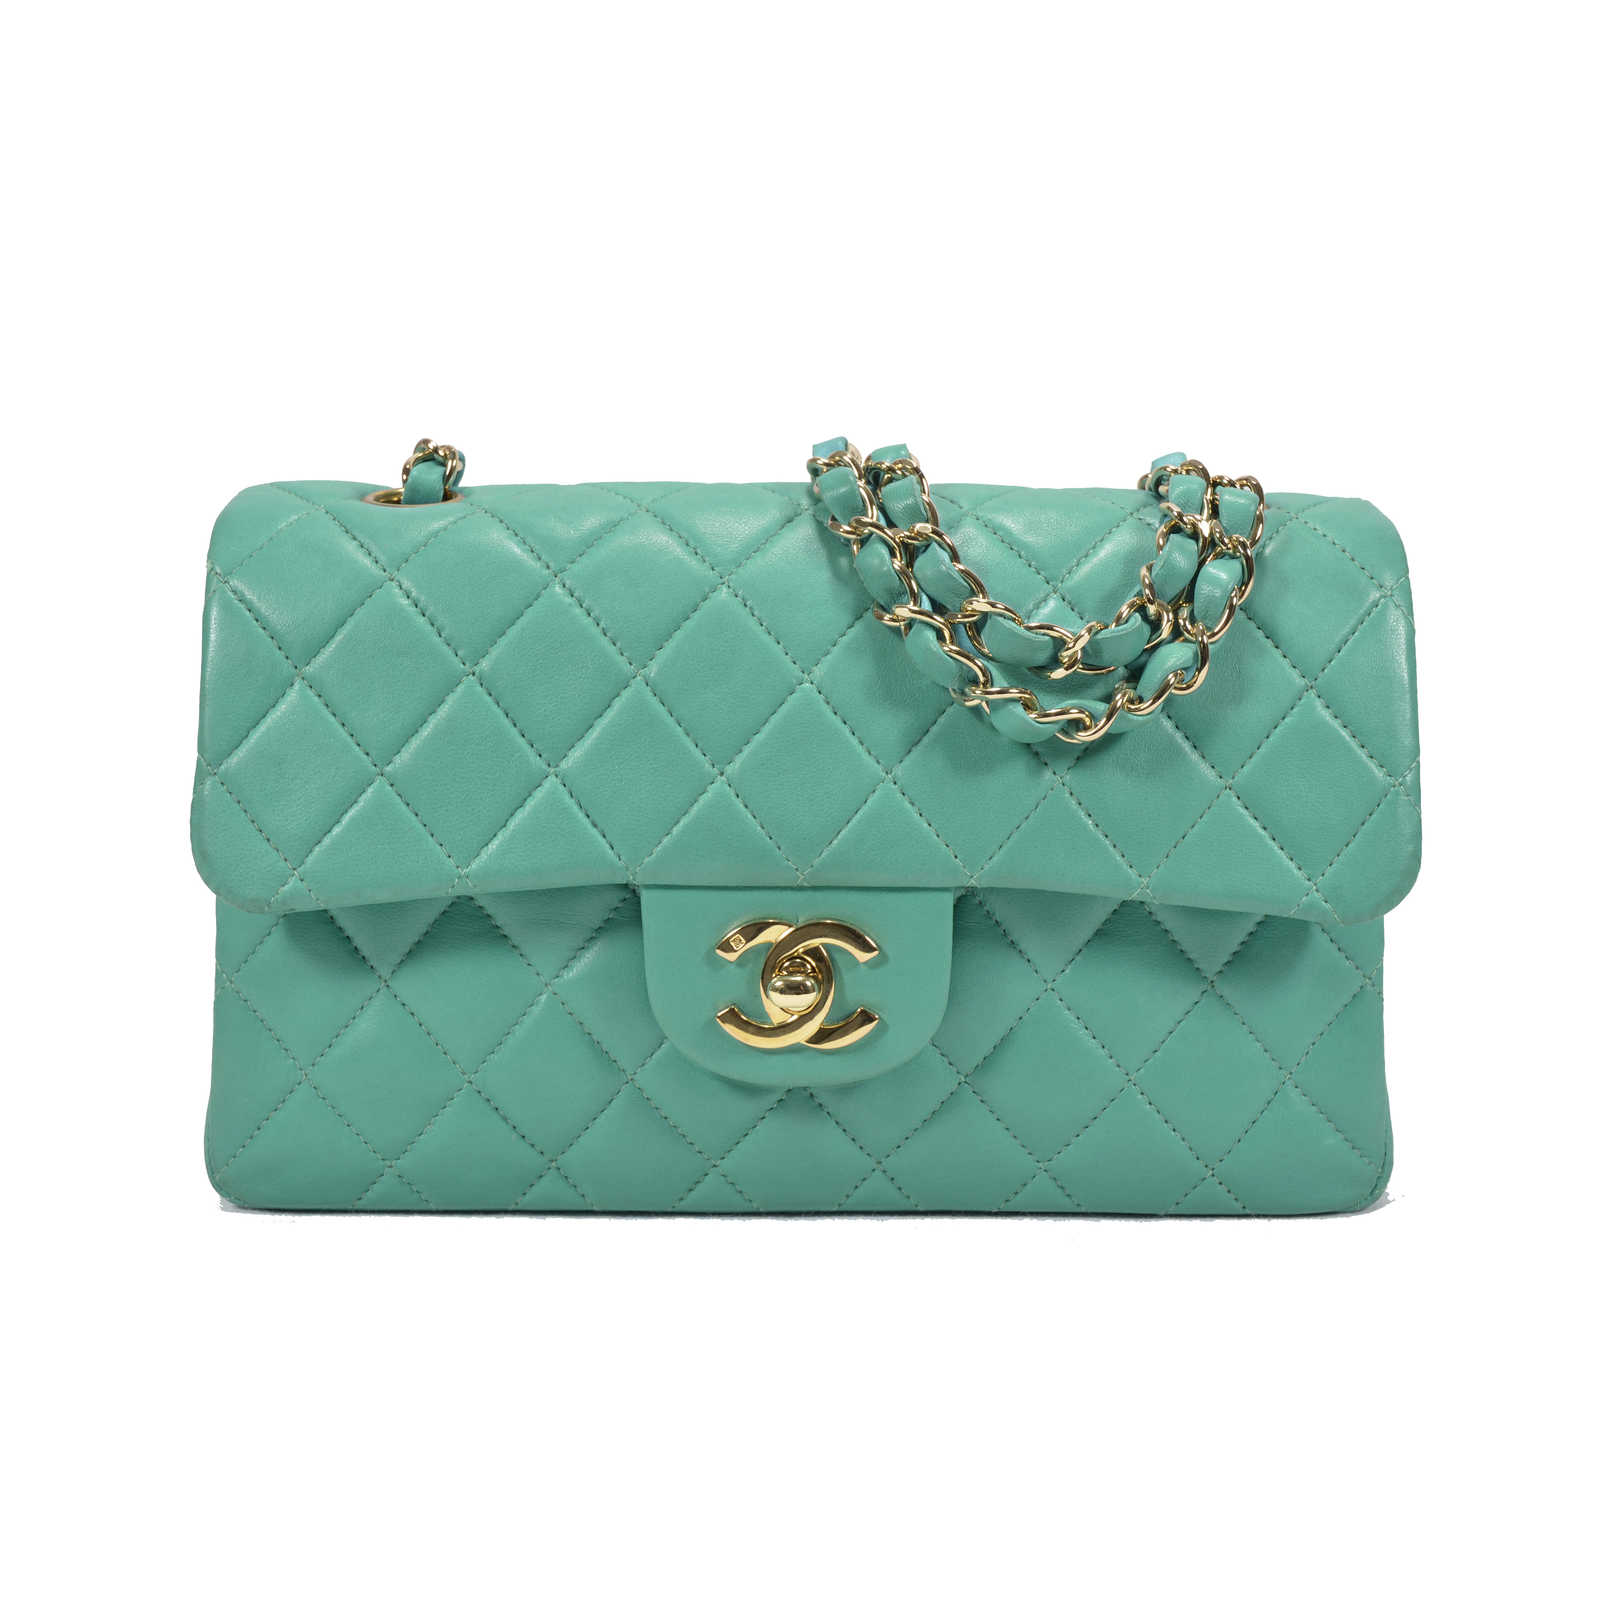 dd0a55d89cc9 Authentic Second Hand Chanel Turquoise Classic Double Flap Bag (PSS-051-00145)  ...